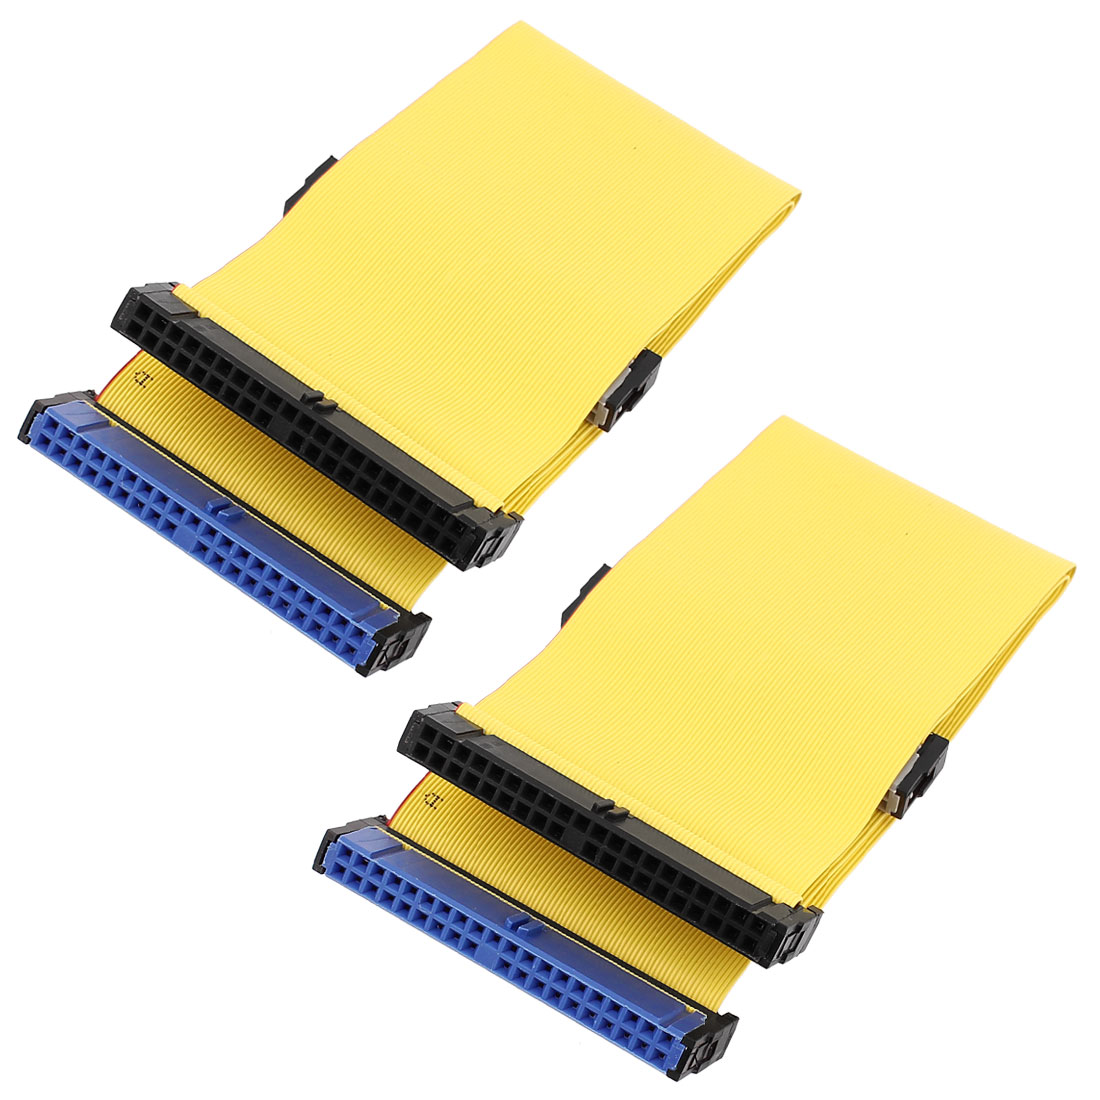 2pcs 18 Inch 40-Pin Female IDE (PATA) Extension Flat Ribbon Cable Yellow